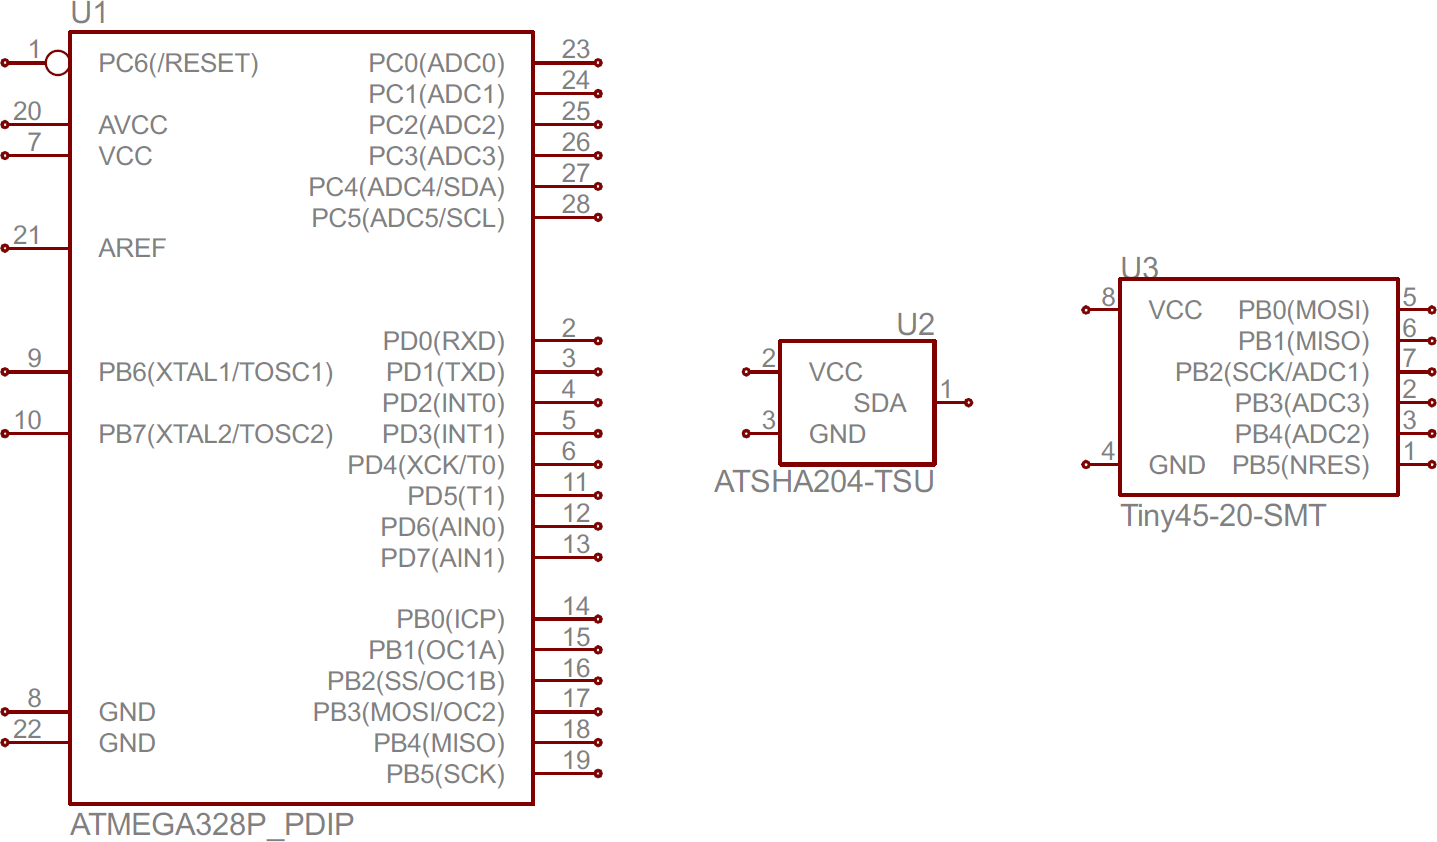 How To Read A Schematic Circuit Diagram Breadboard Atmega328 Atsha204 And Attiny45 Ic Symbols